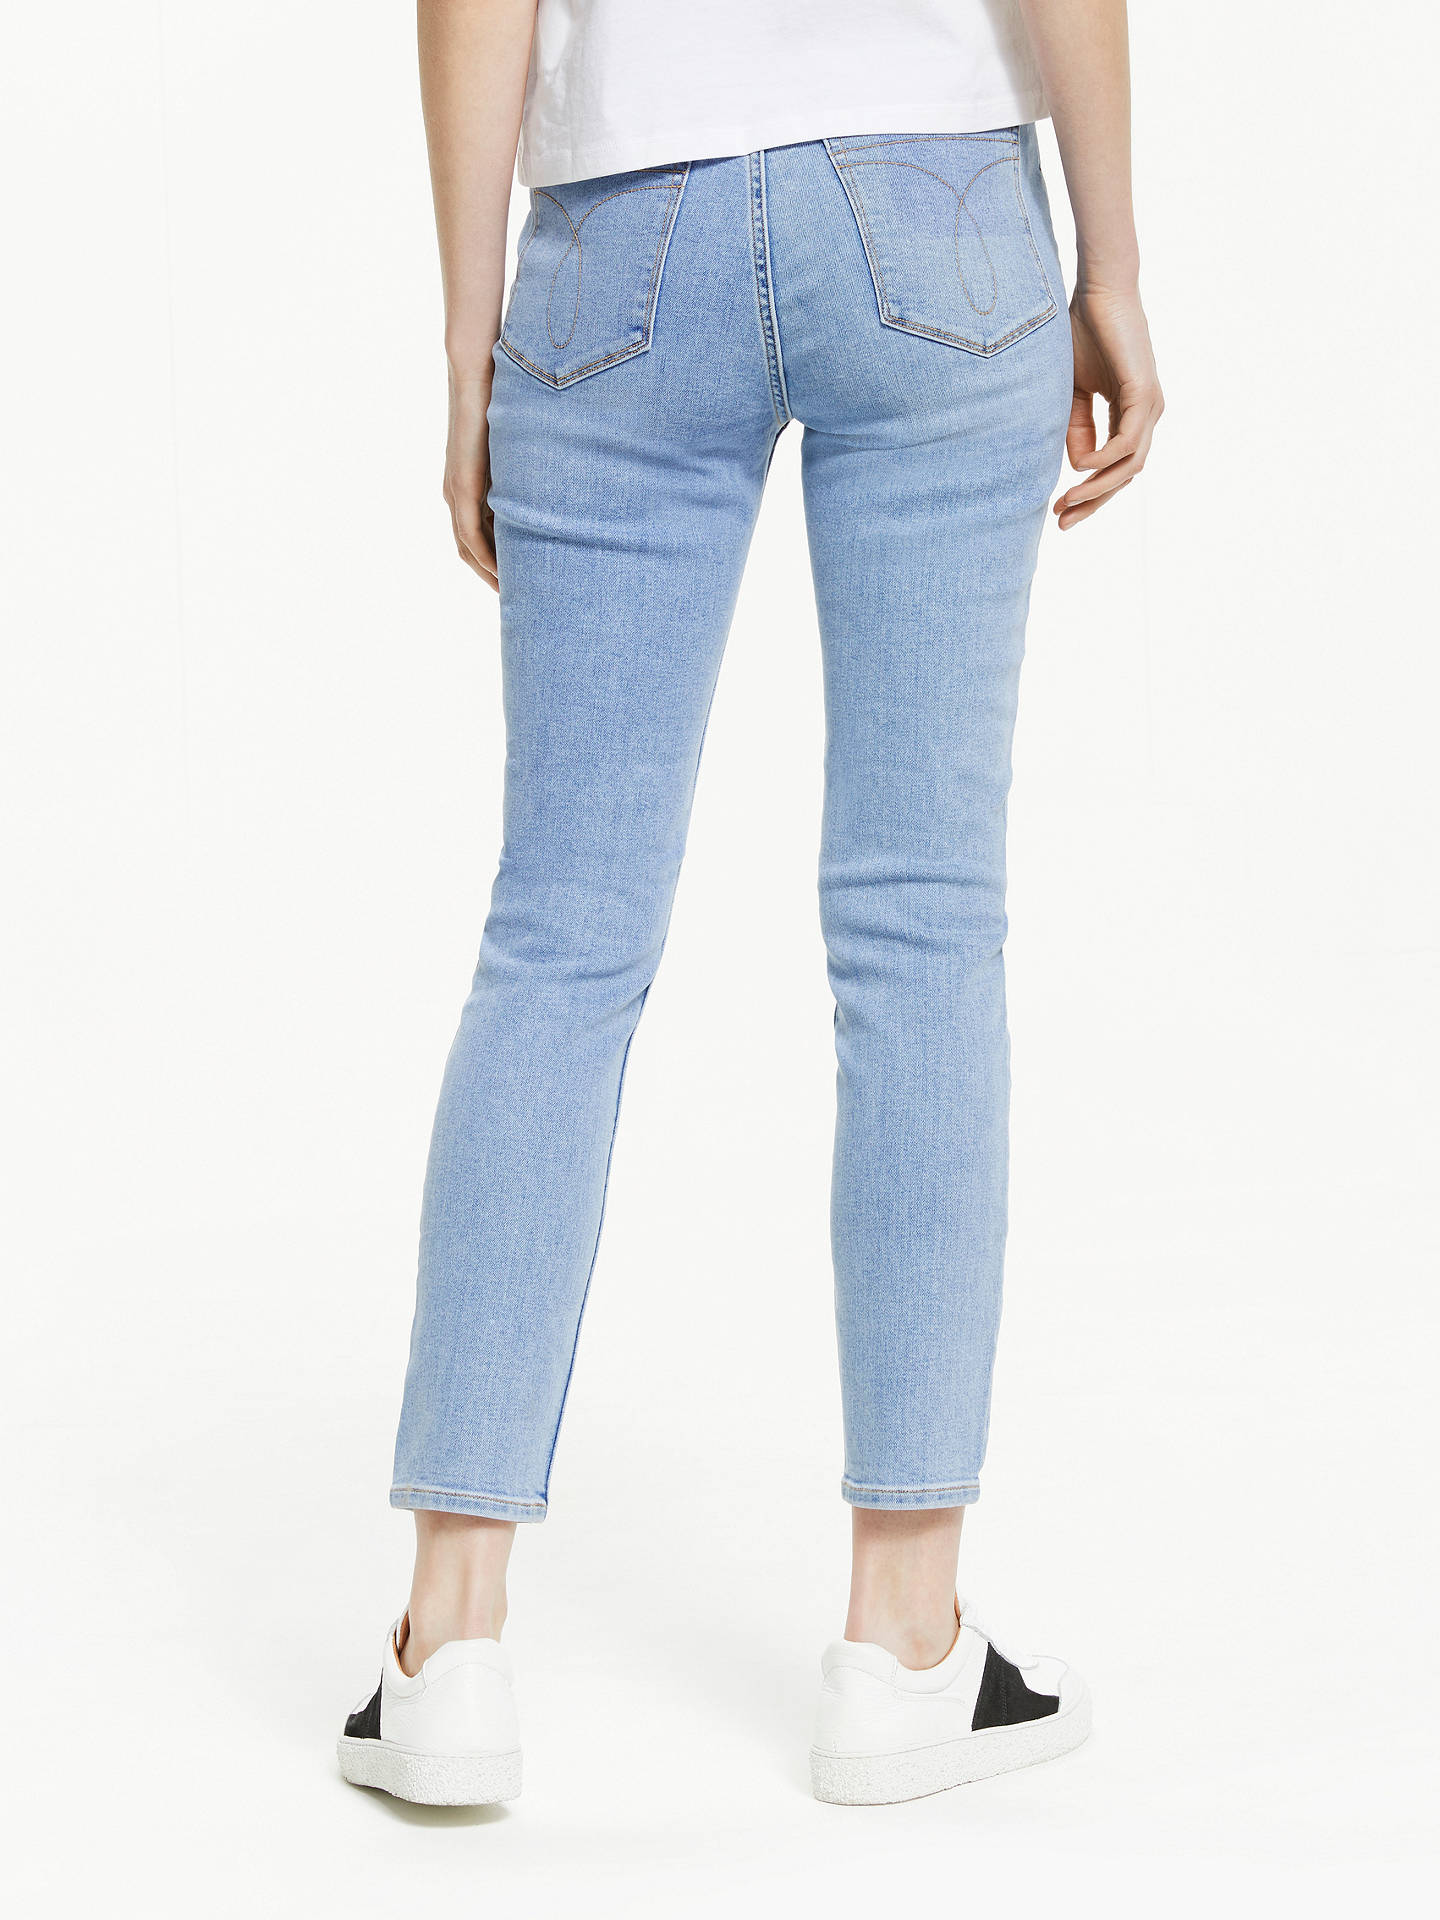 37660f2ca6124 ... Buy Calvin Klein High Rise Skinny Ankle Jeans, Iconic Stone, W27/L30  Online ...